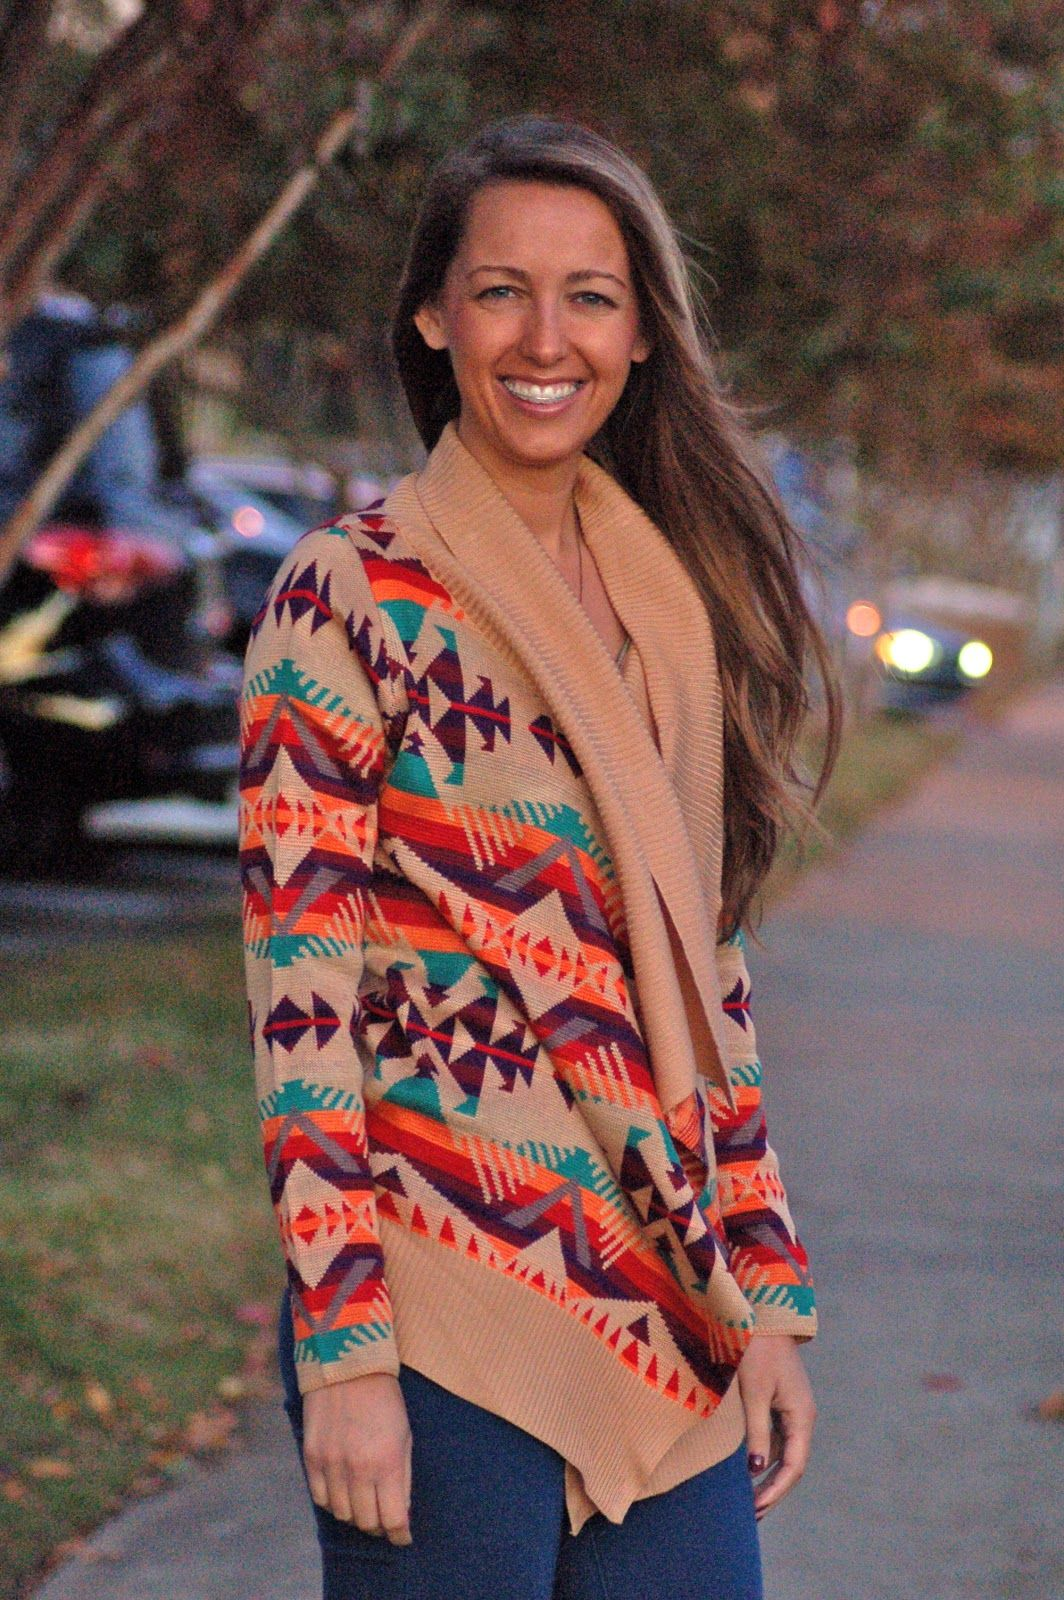 J's Southern Chic tribal sweater.